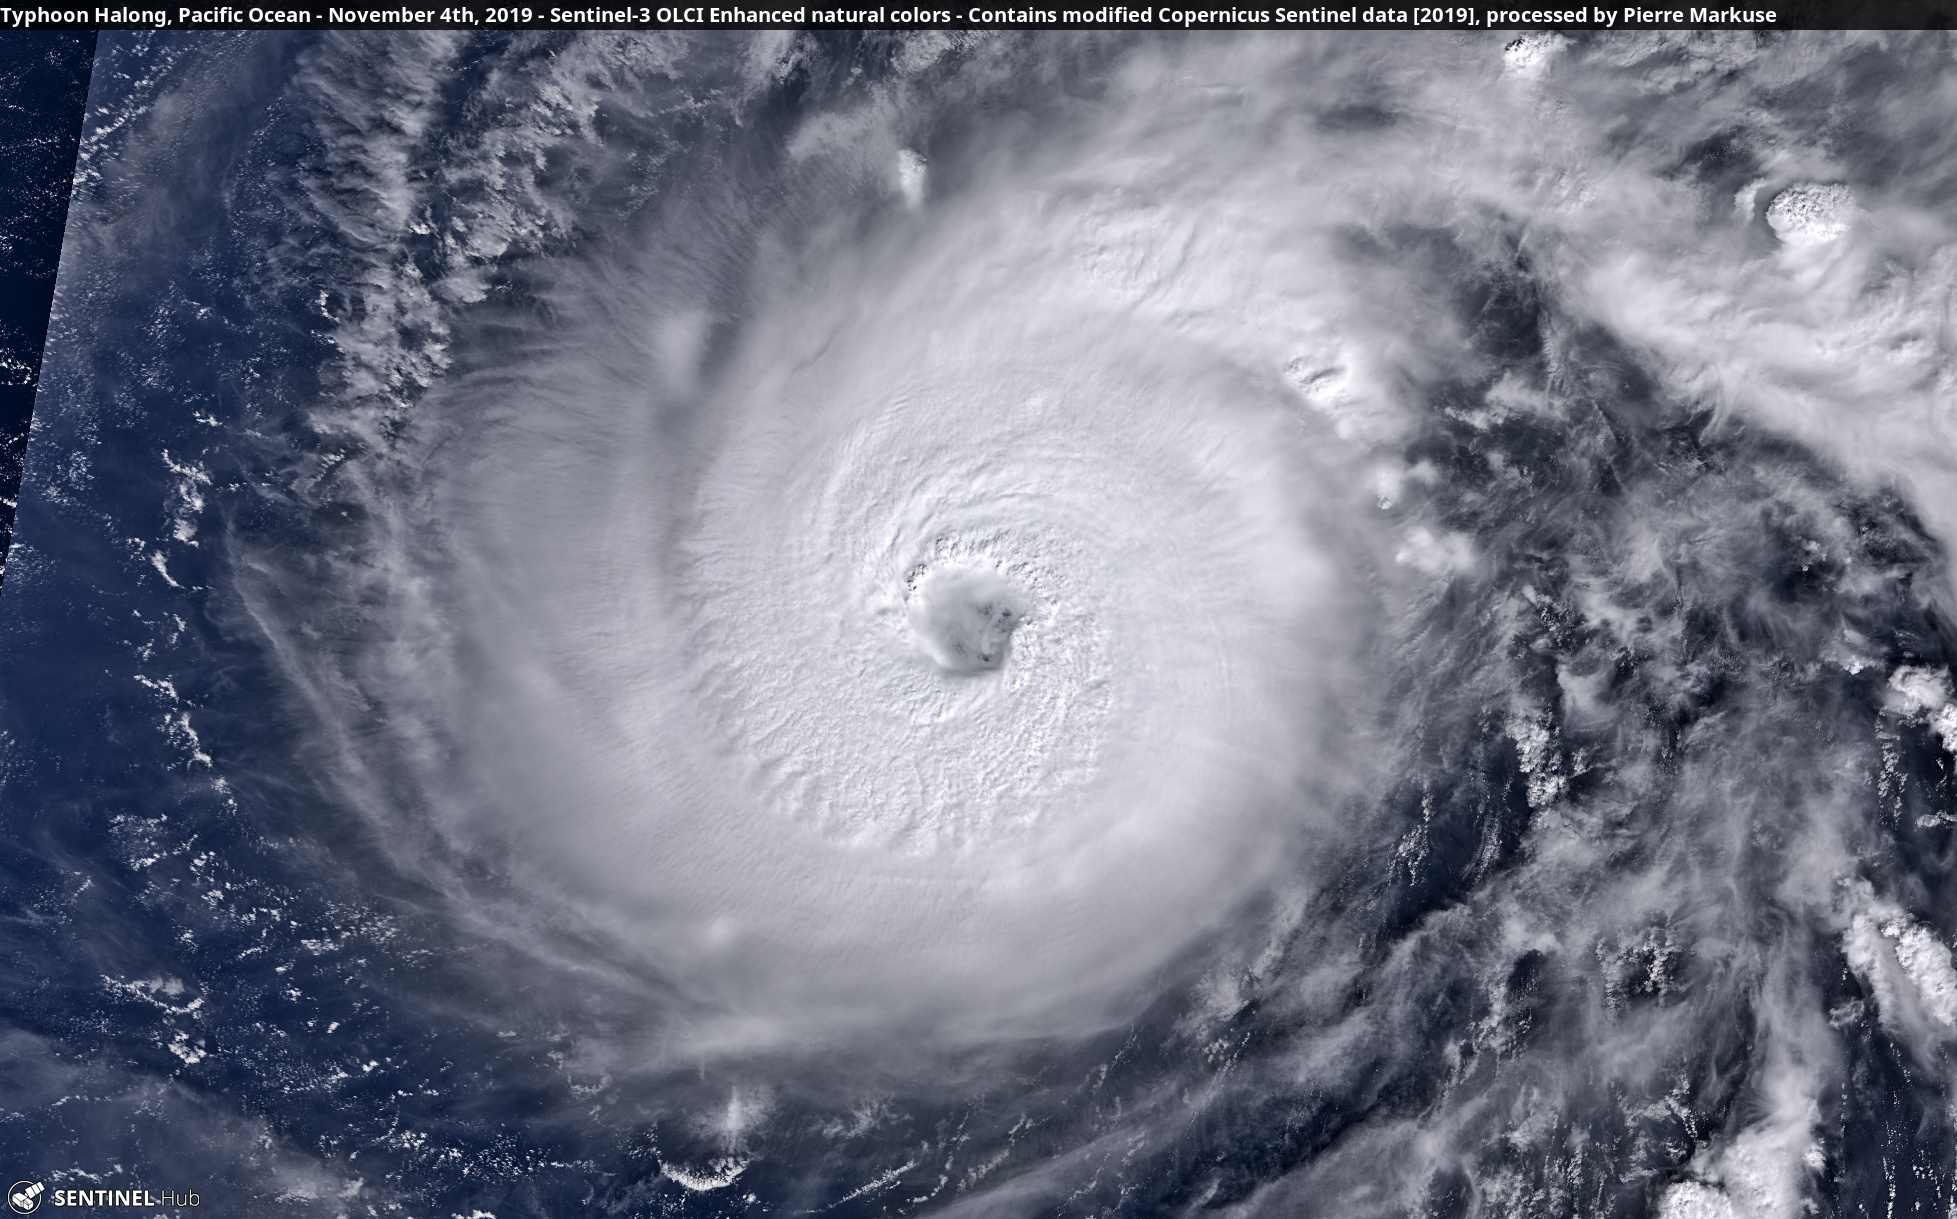 desc:Typhoon Halong, Pacific Ocean - November 4th, 2019 Copernicus/Pierre Markuse